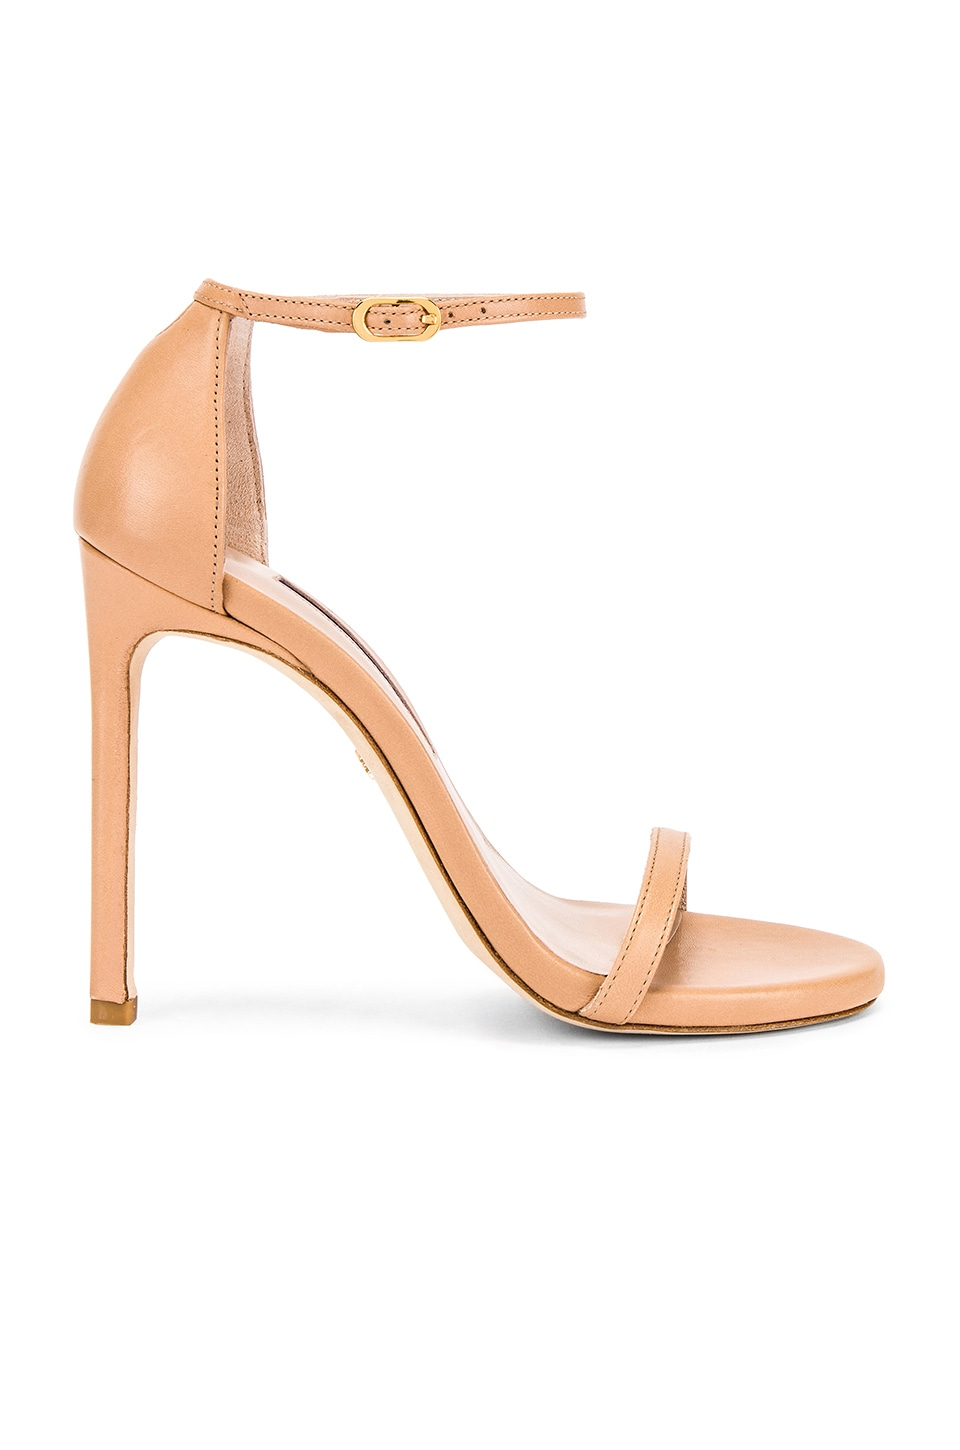 Stuart Weitzman Nudist Heel in Adobe Leather